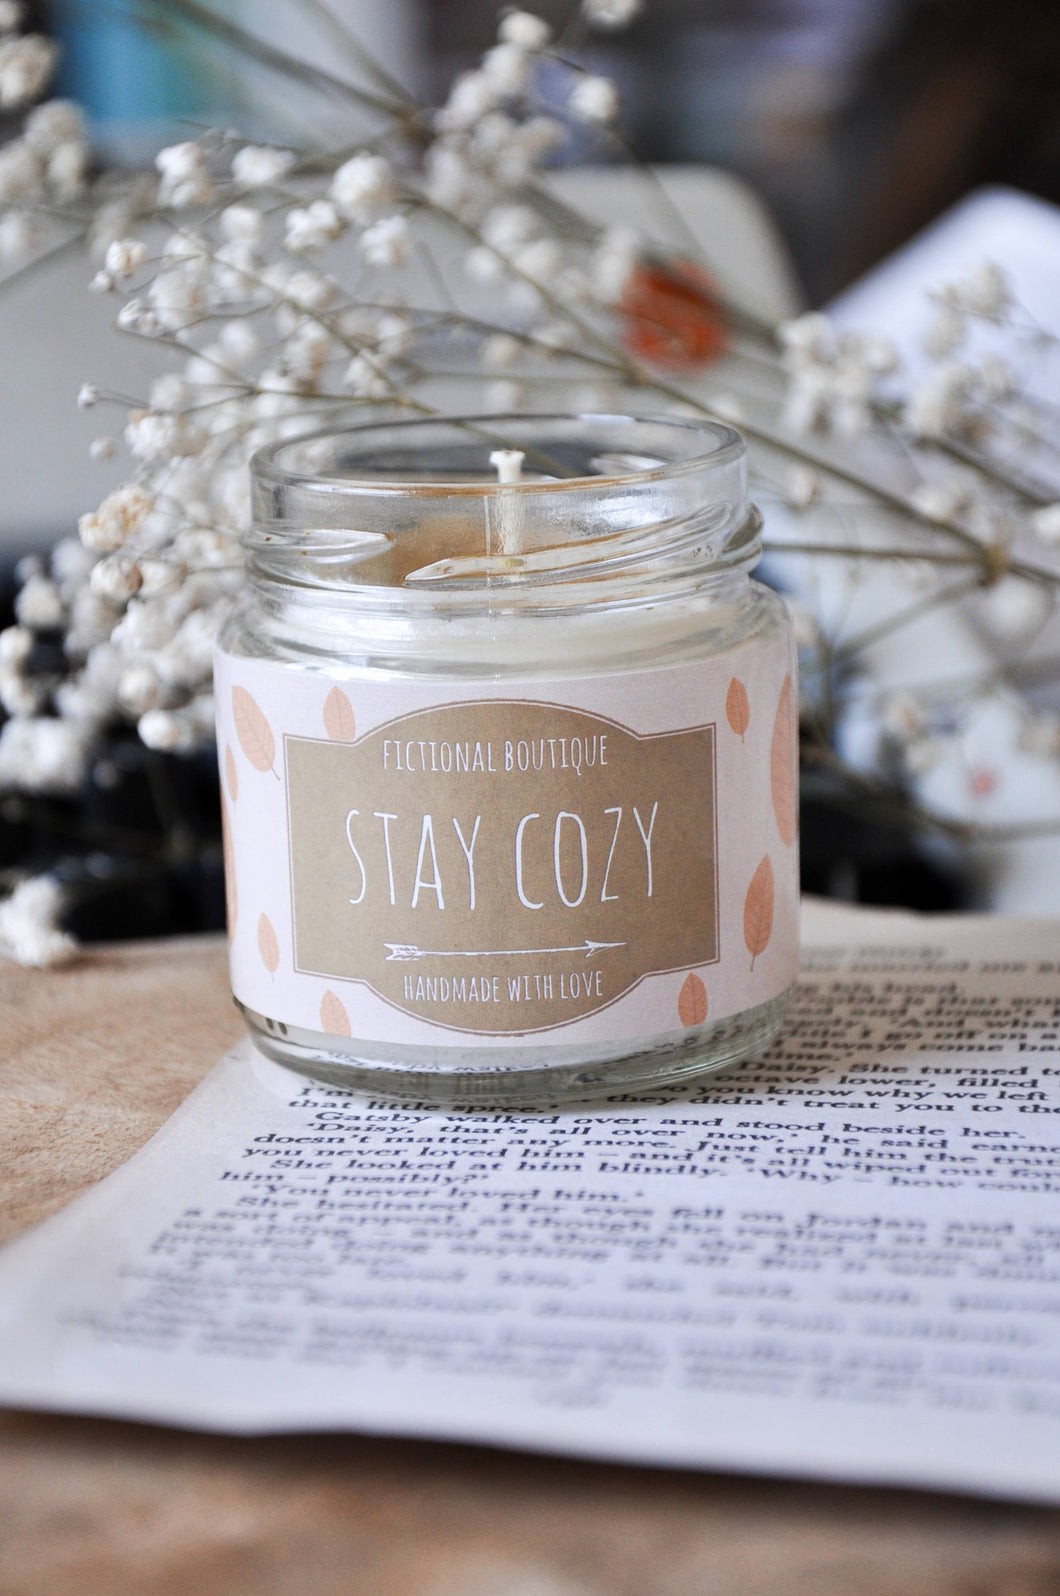 Stay Cozy Candle